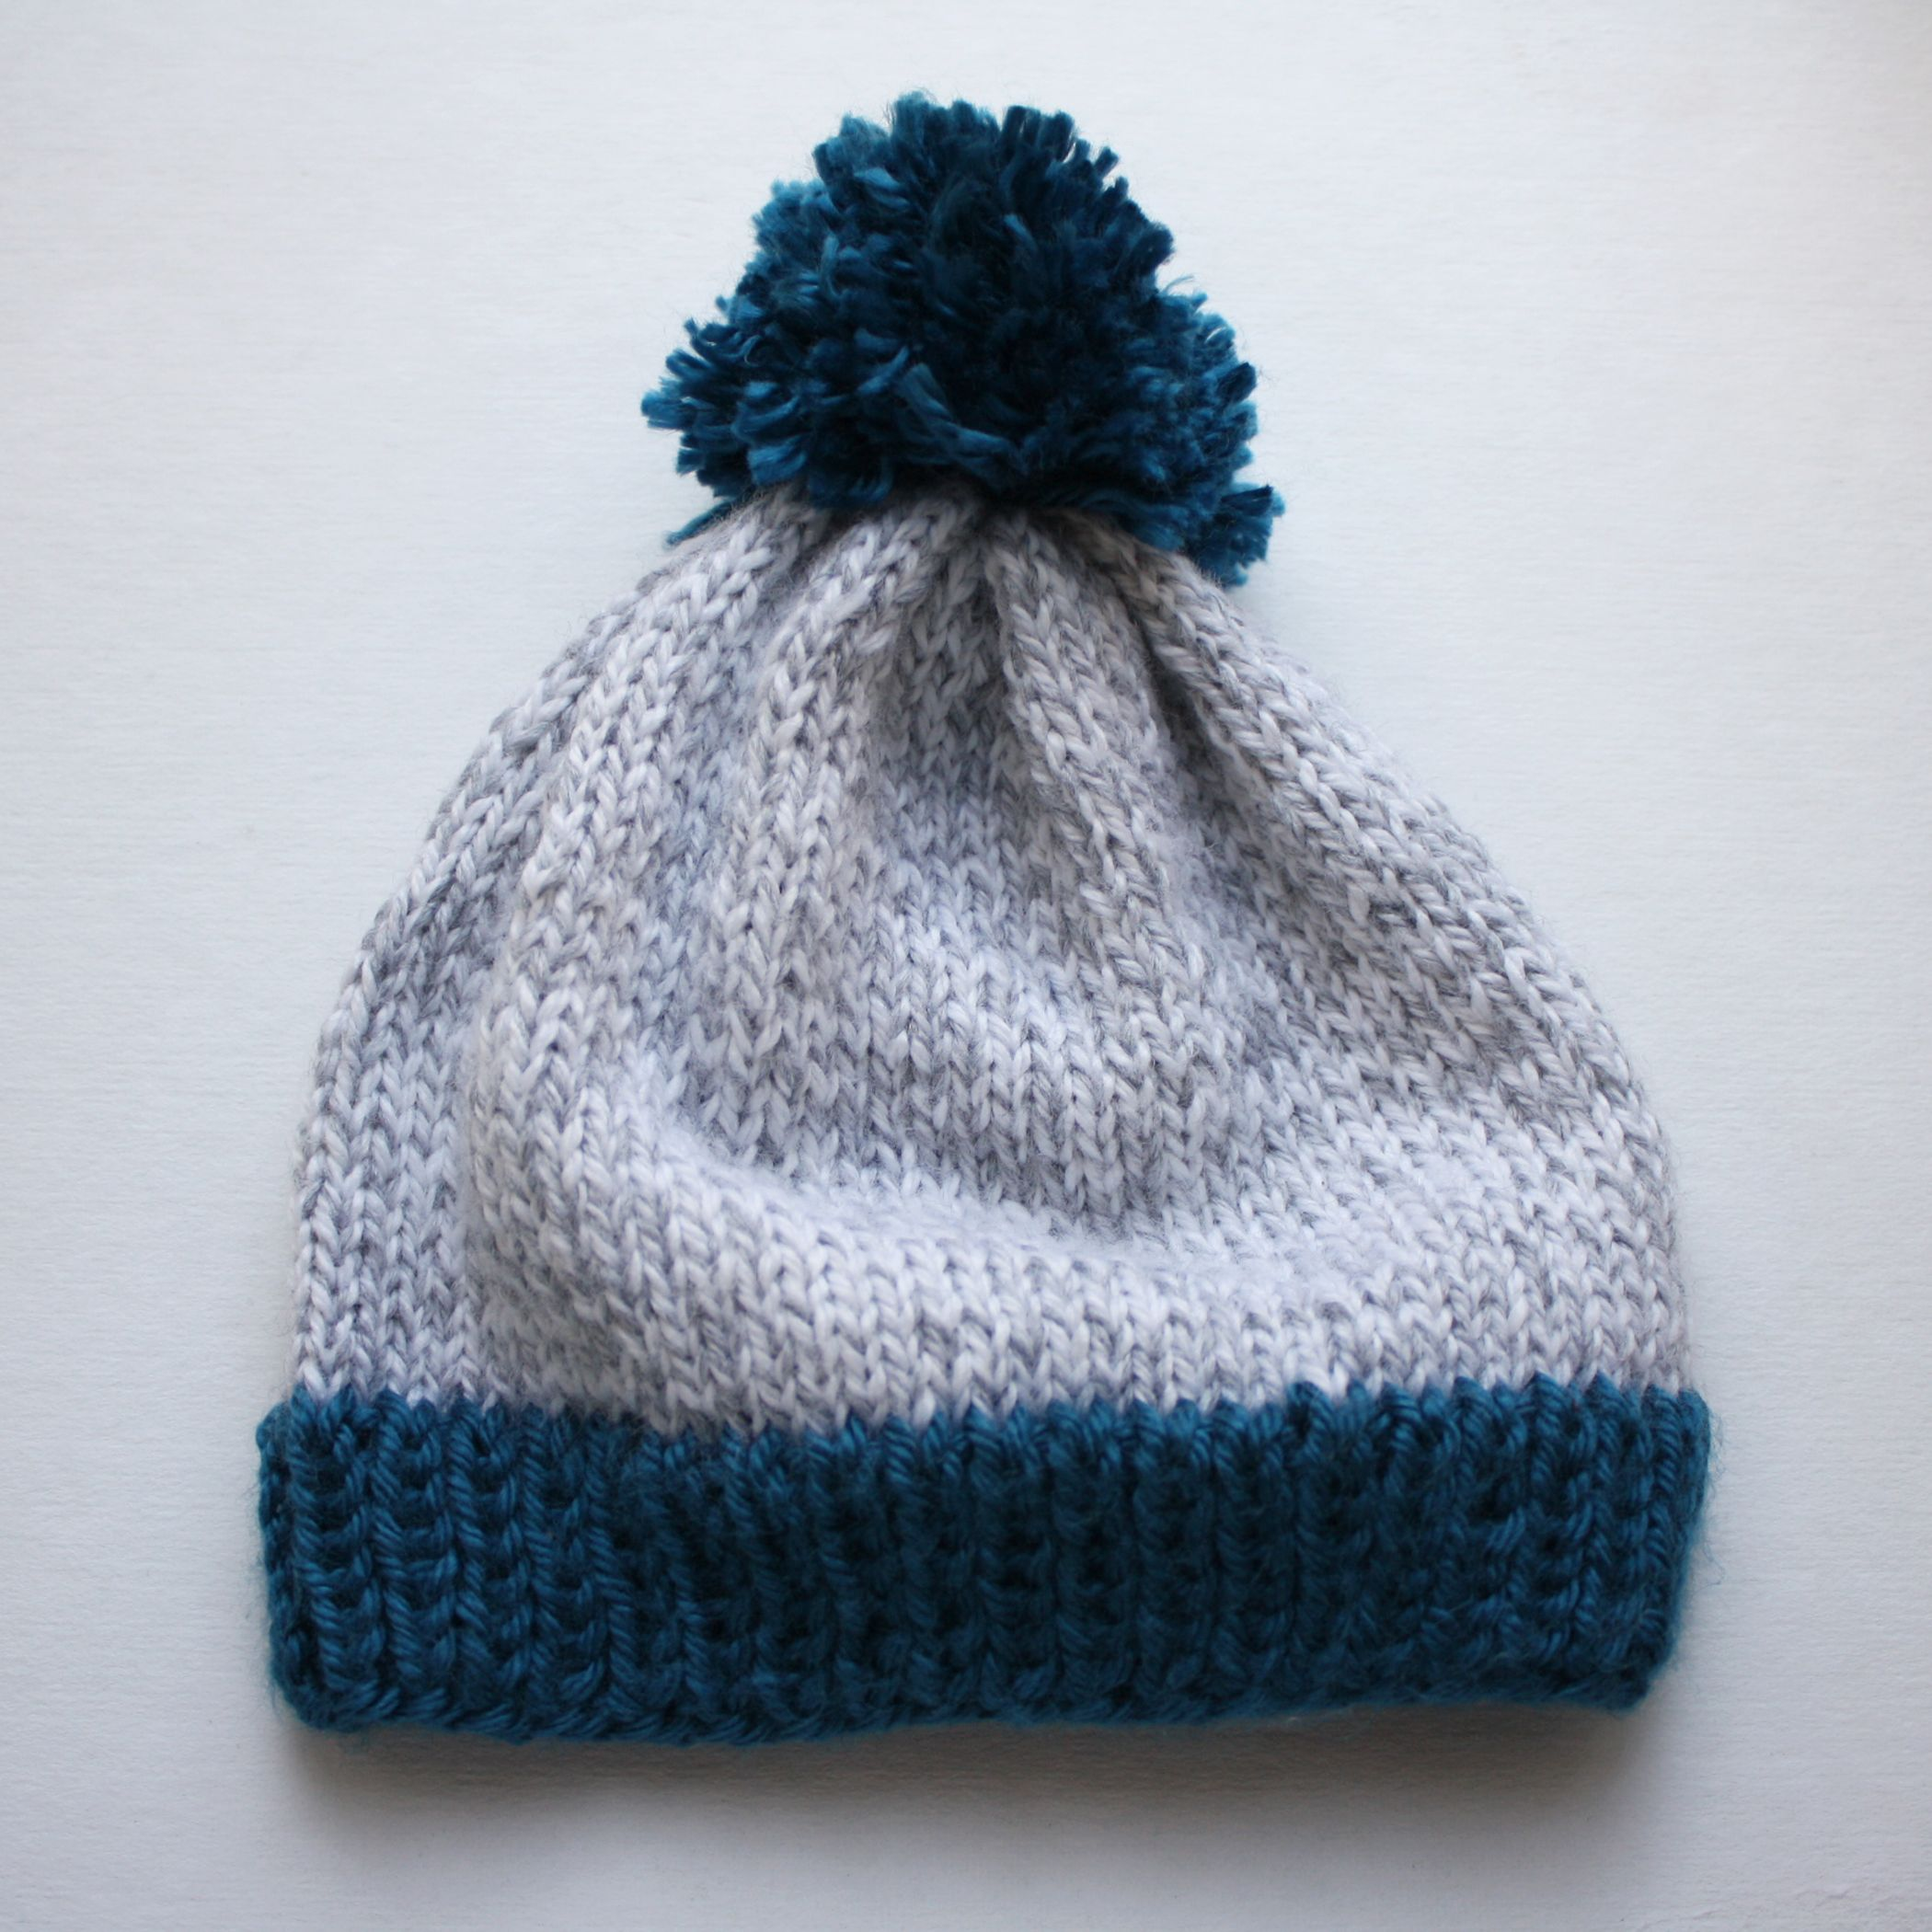 free baby hat knitting pattern | tiny | Pinterest | Baby hat ...